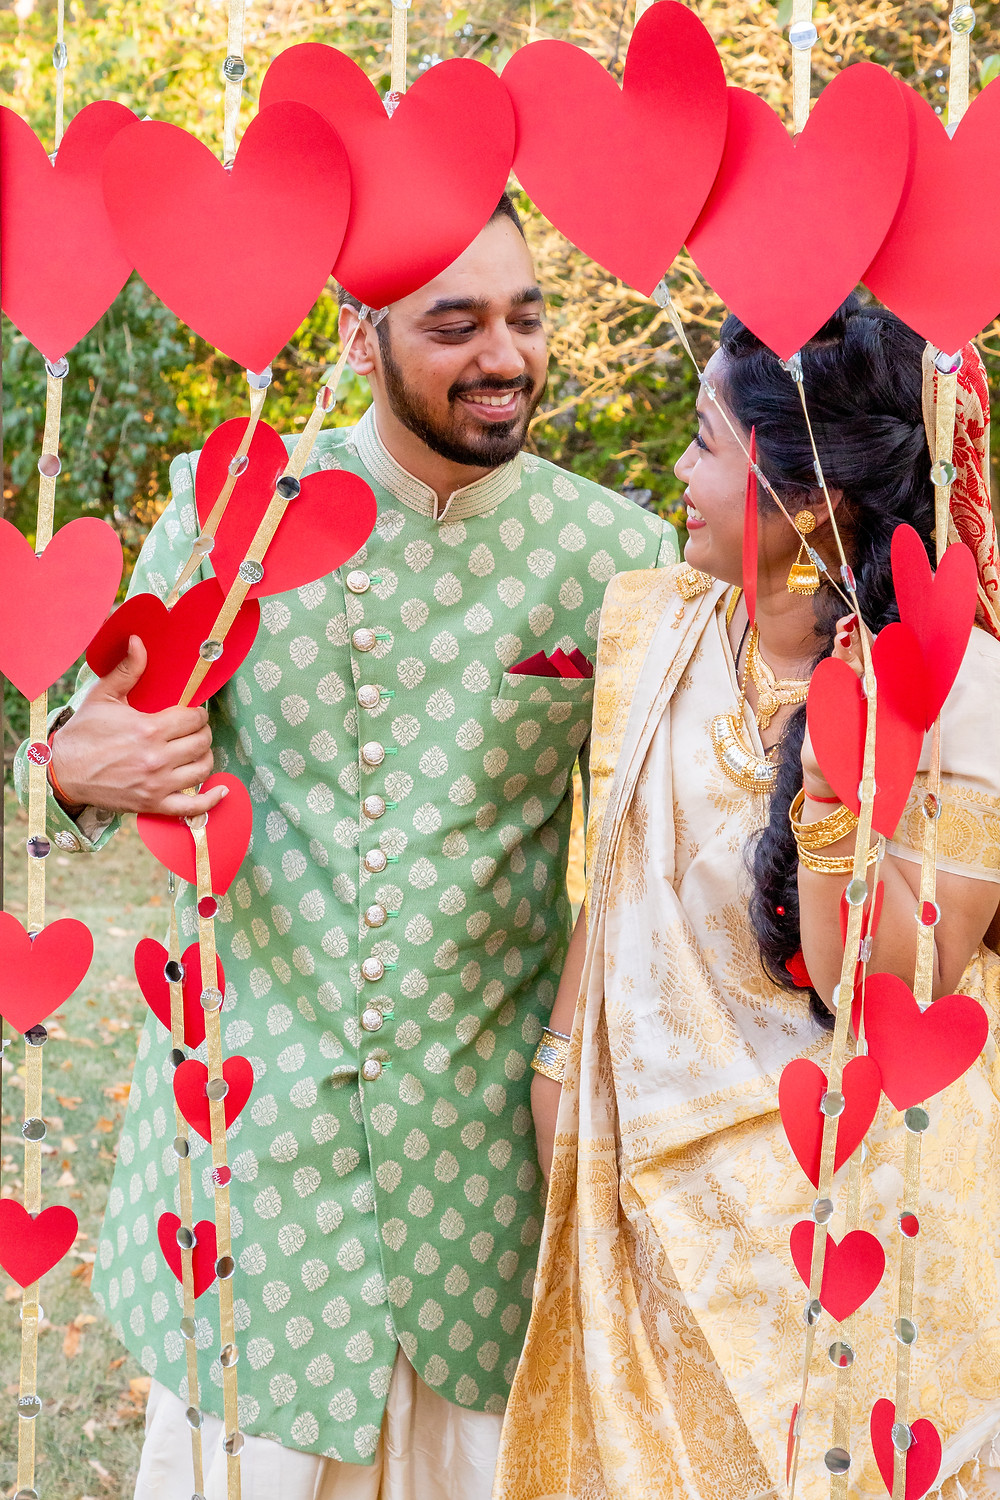 Indian wedding photographer captures image of indian husband and wife smiling at each other with heart decorations.